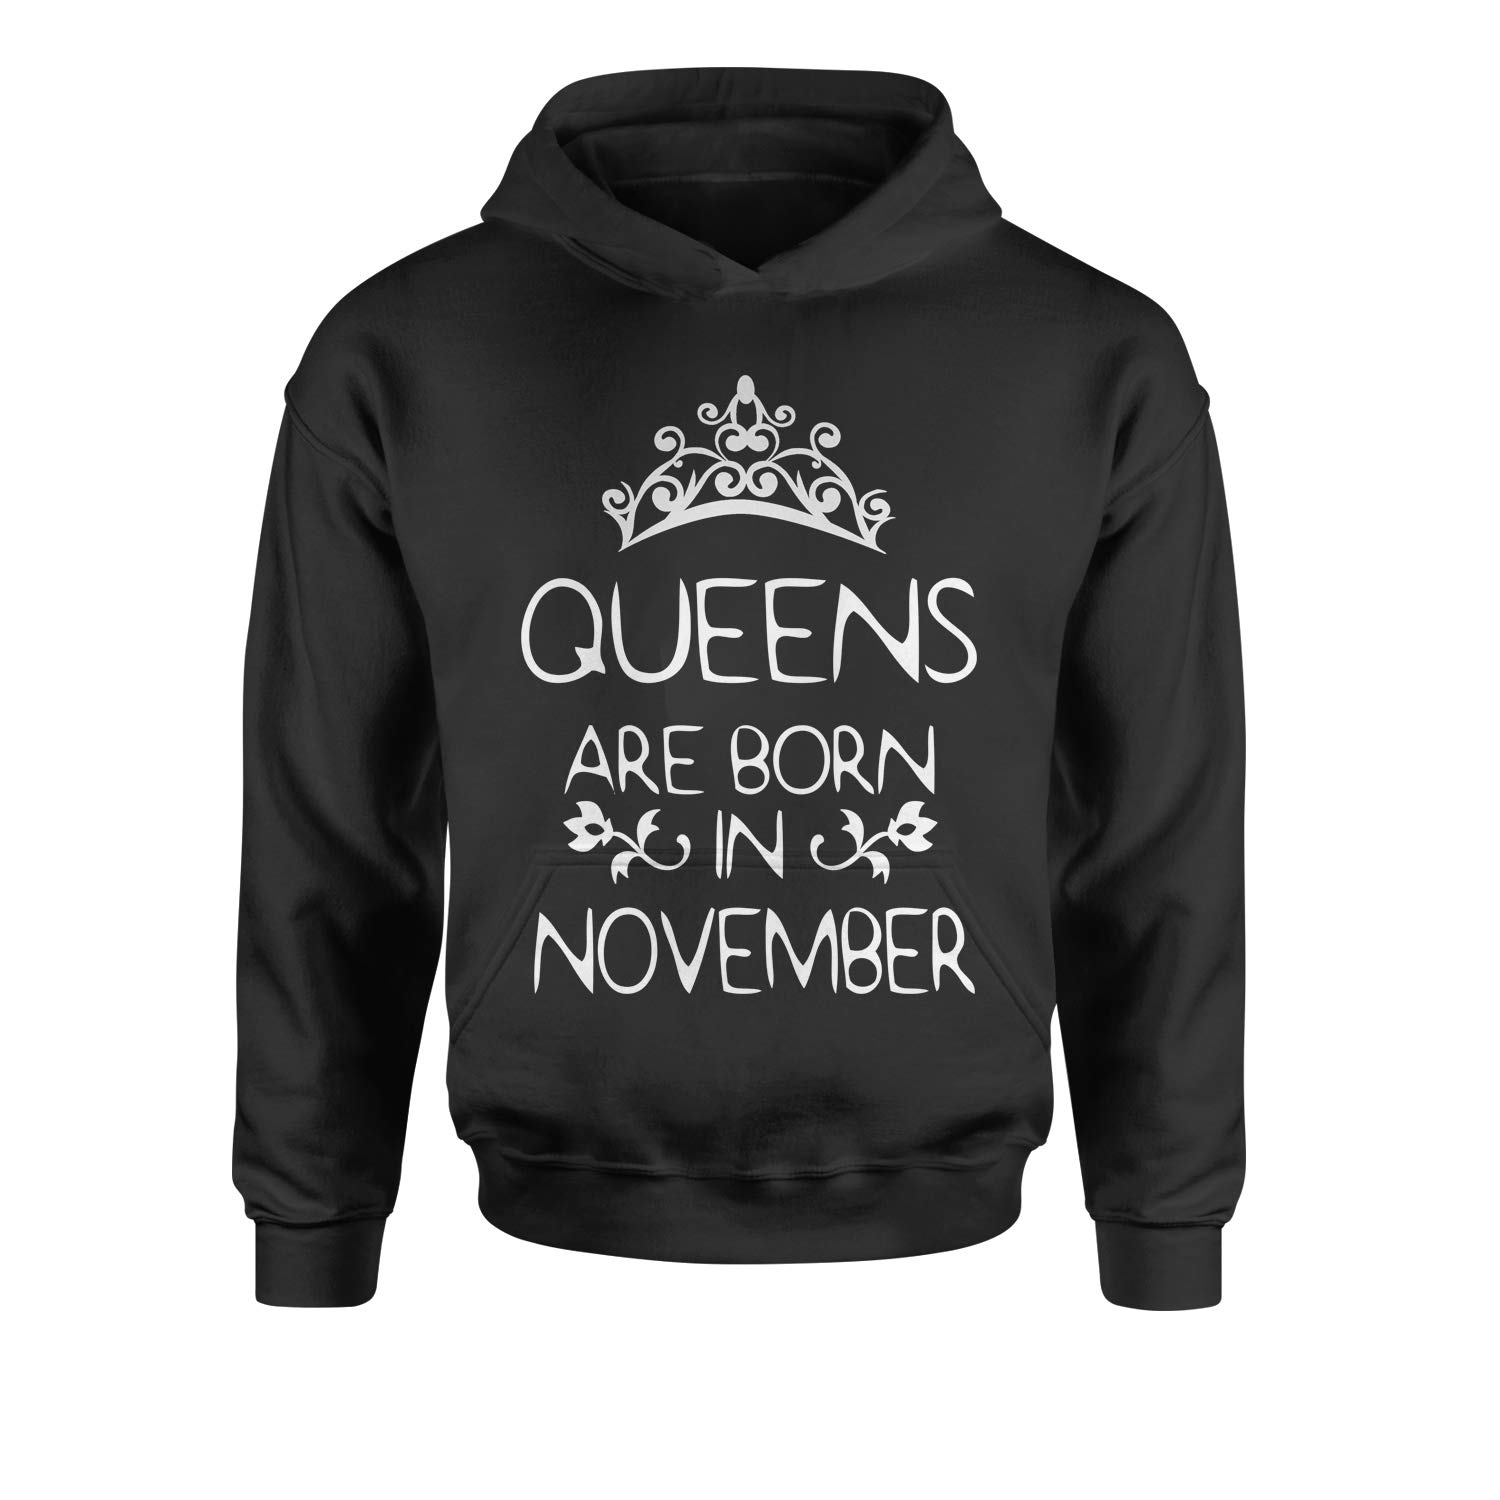 Motivated Culture Queens are Born in November Youth-Sized Hoodie